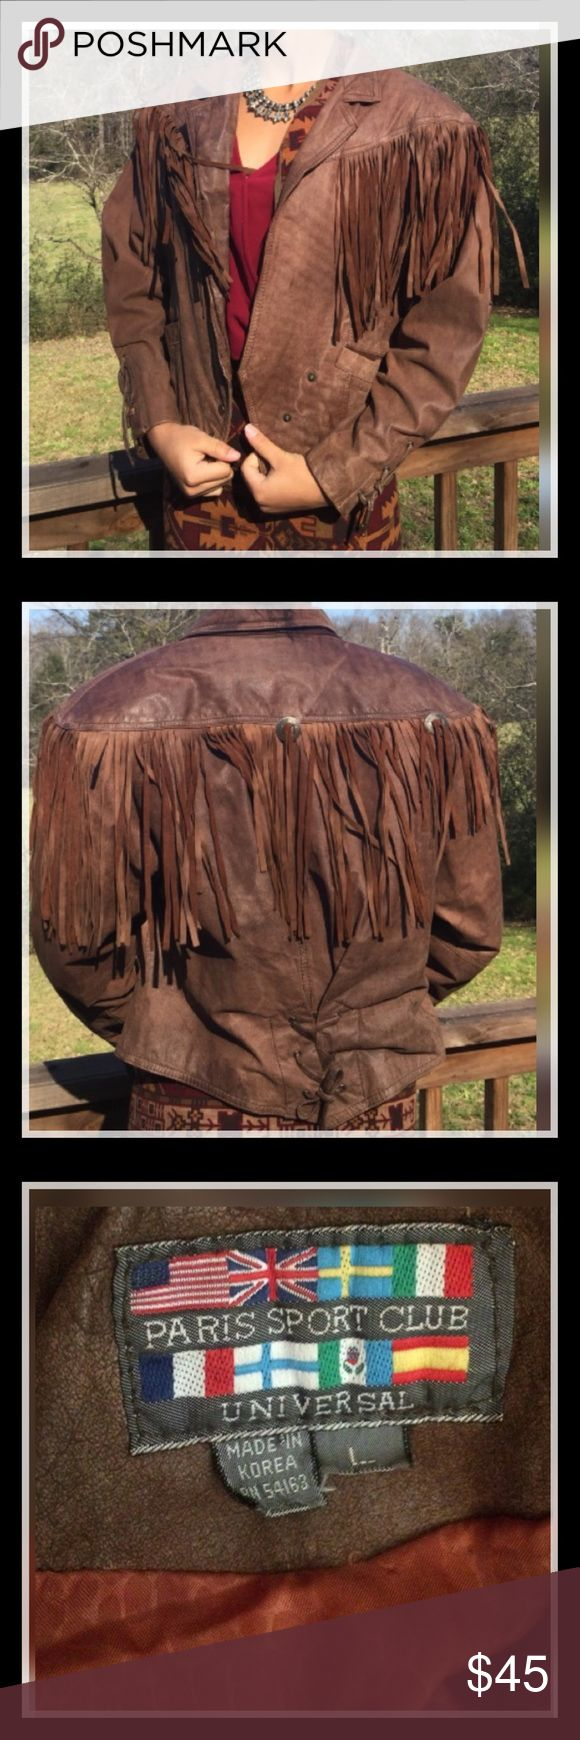 Georgeous Leather  Jacket w/Fringe Vintage Georgeous Leather  Jacket w/Fringe Vintage. Reposh.  Paris Sport Club vintage '80's brown leather fringe Jacket. Very good condition. Size says large but would probably fit medium also. Paris Sport Club Jackets & Coats